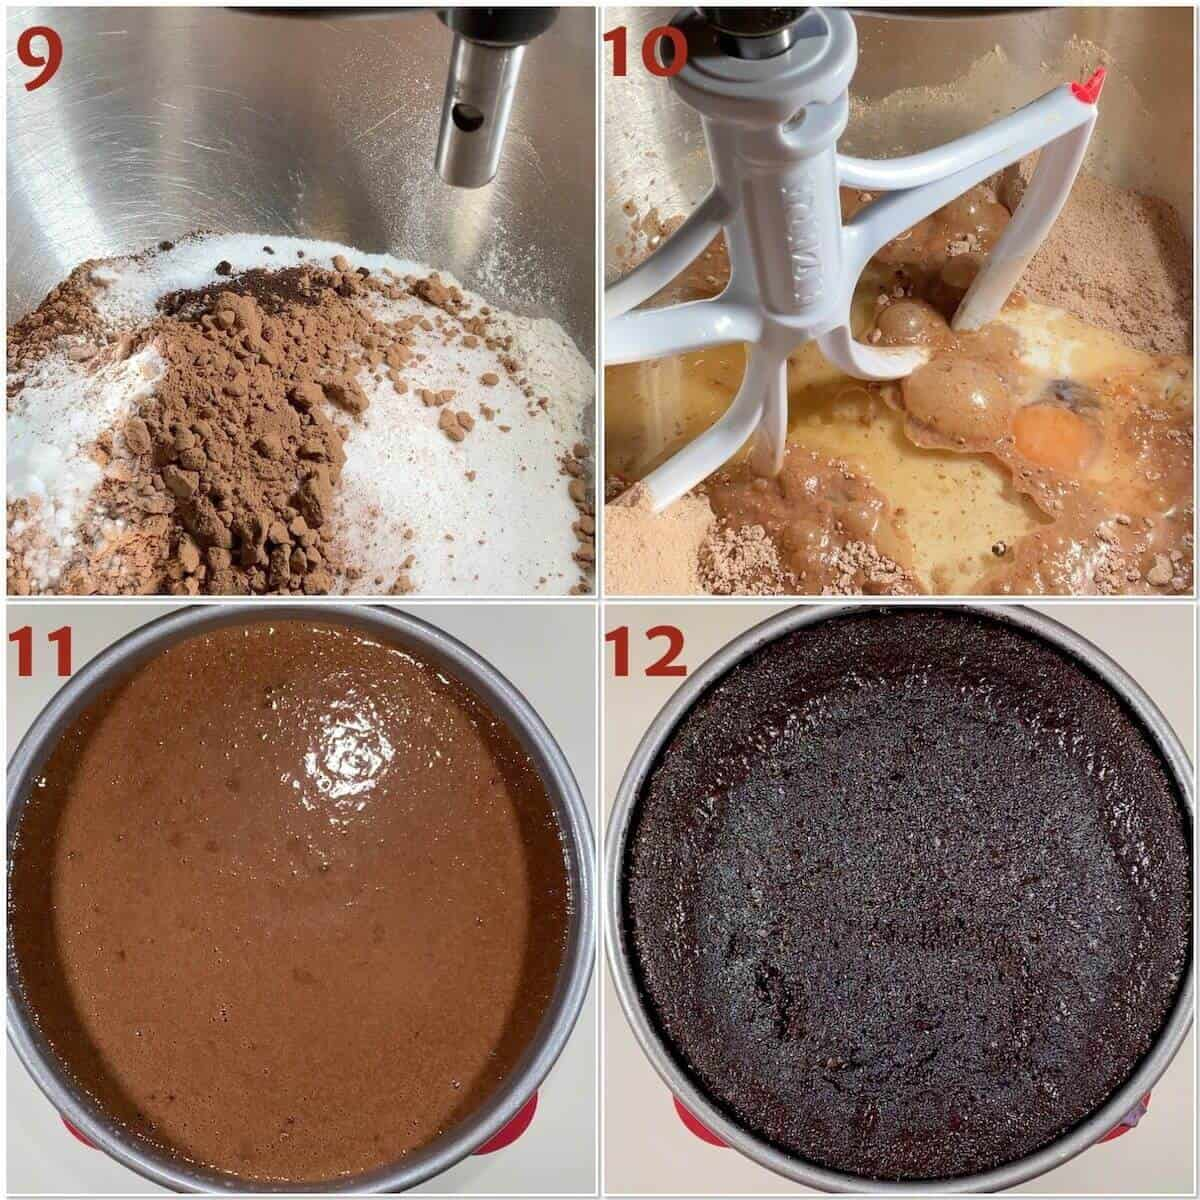 Collage of mixing chocolate cake batter & before & after baking